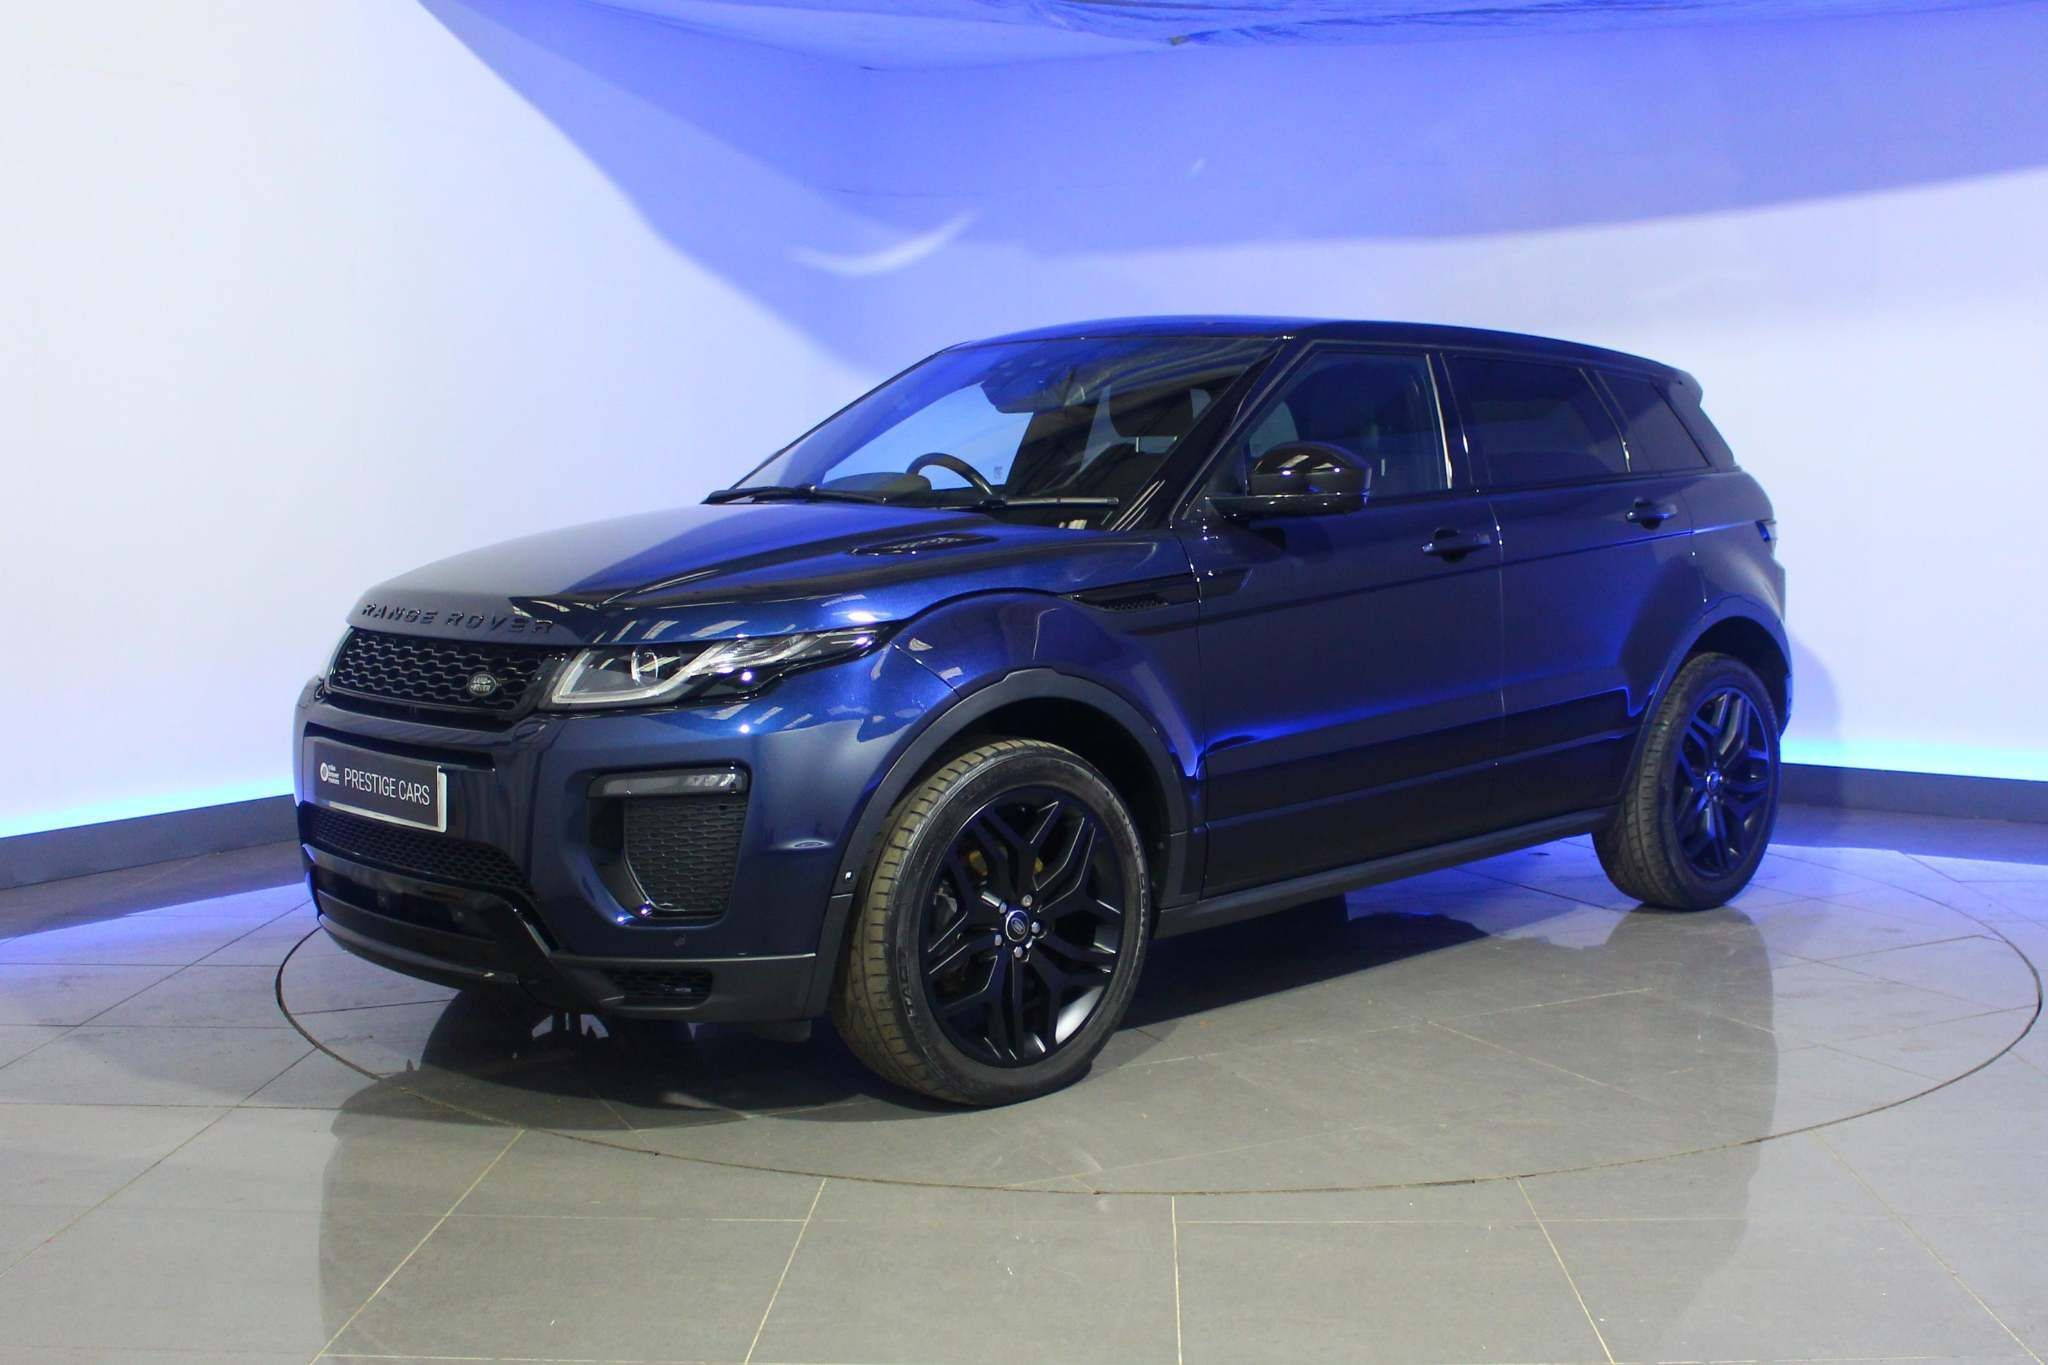 Used  Land Rover Range Rover Evoque HSE Dynamic Lux